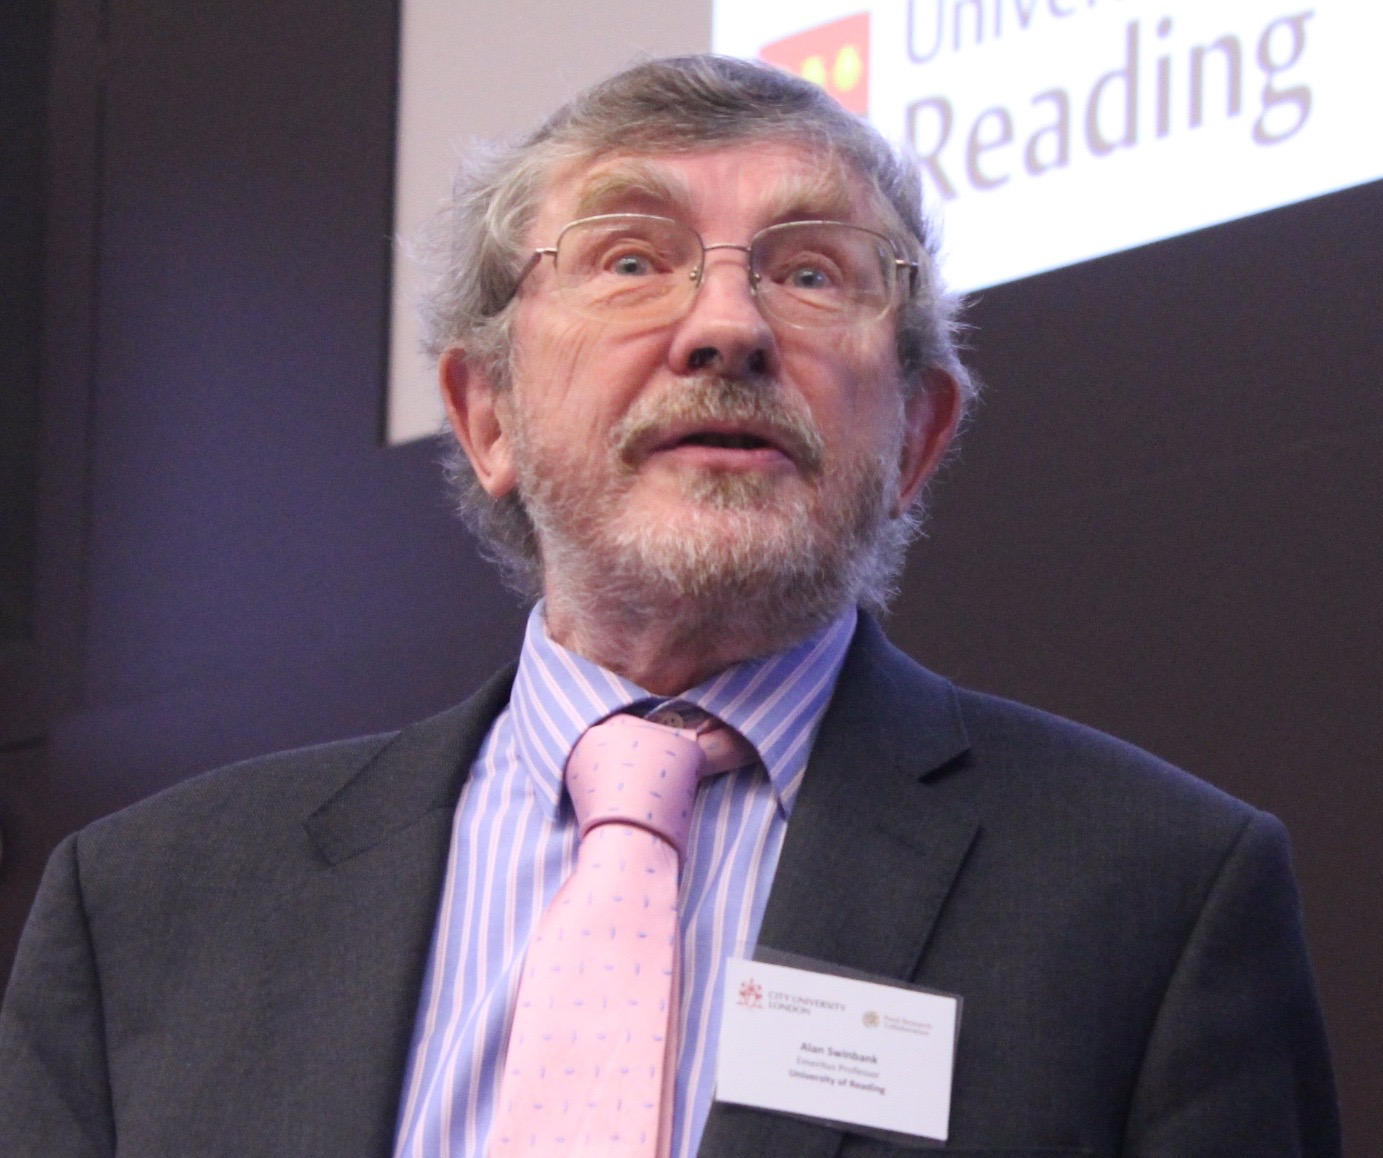 Professor Alan Swinbank at City University Food Symposium, December 2015